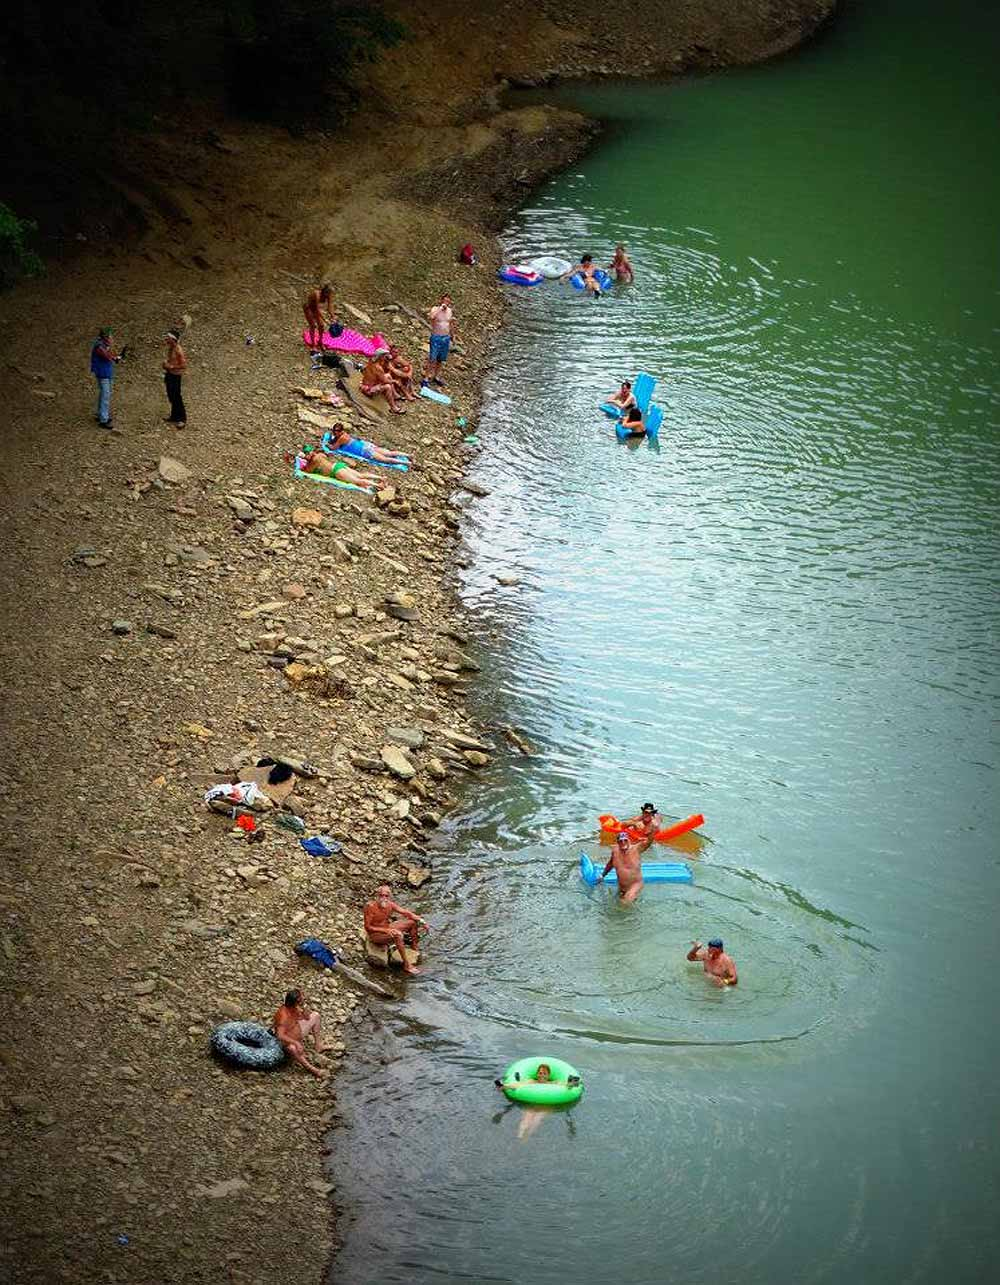 Playing in the Mulberry River